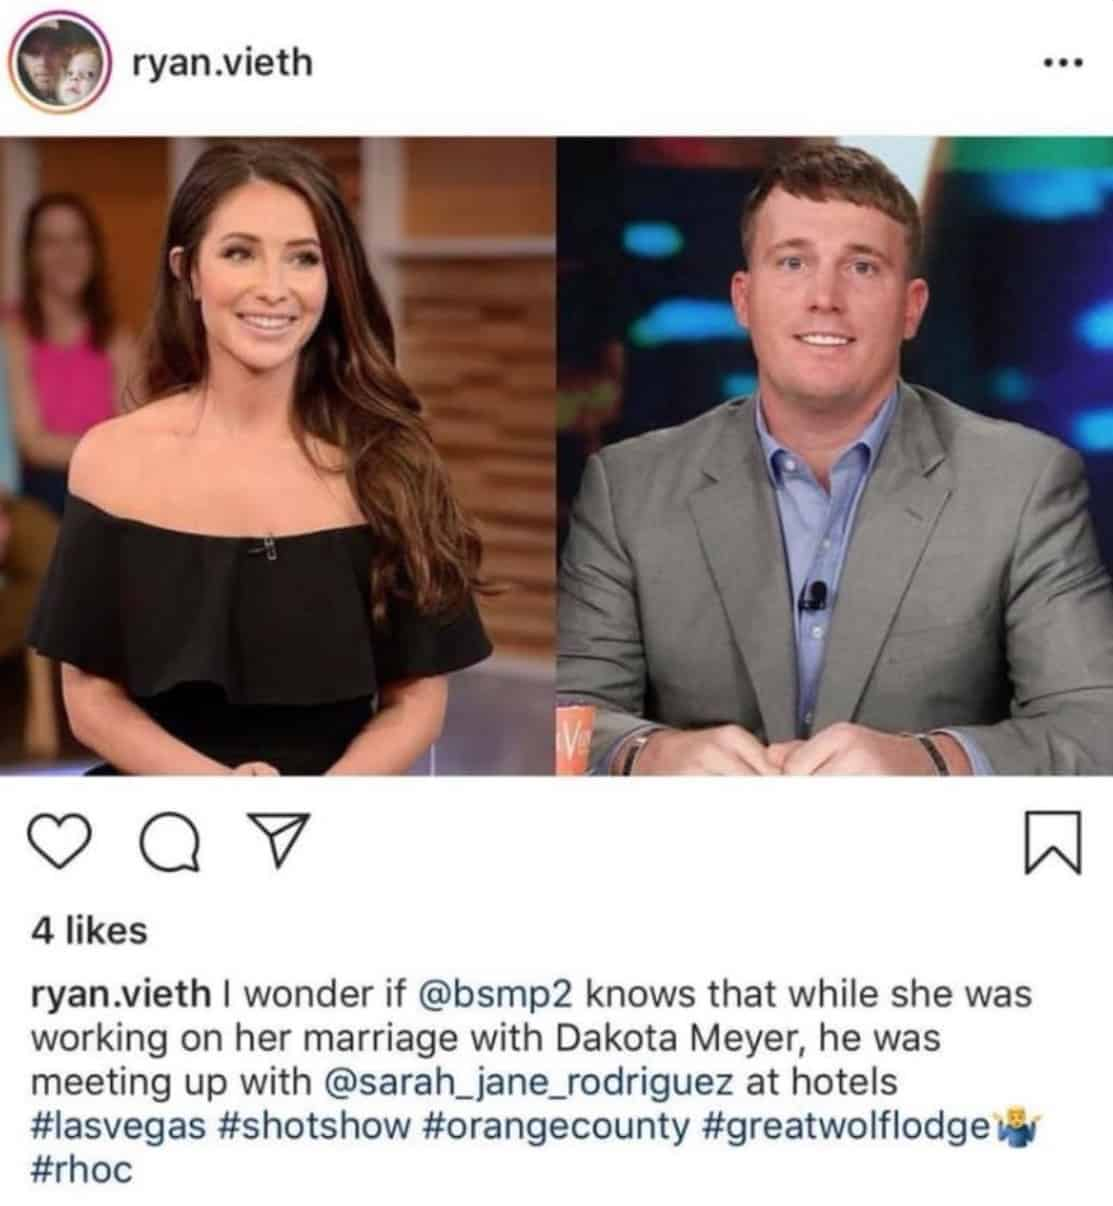 RHOC Ryan Vieth Claims Ex Hooked Up With Bristol Palin's Ex Husband